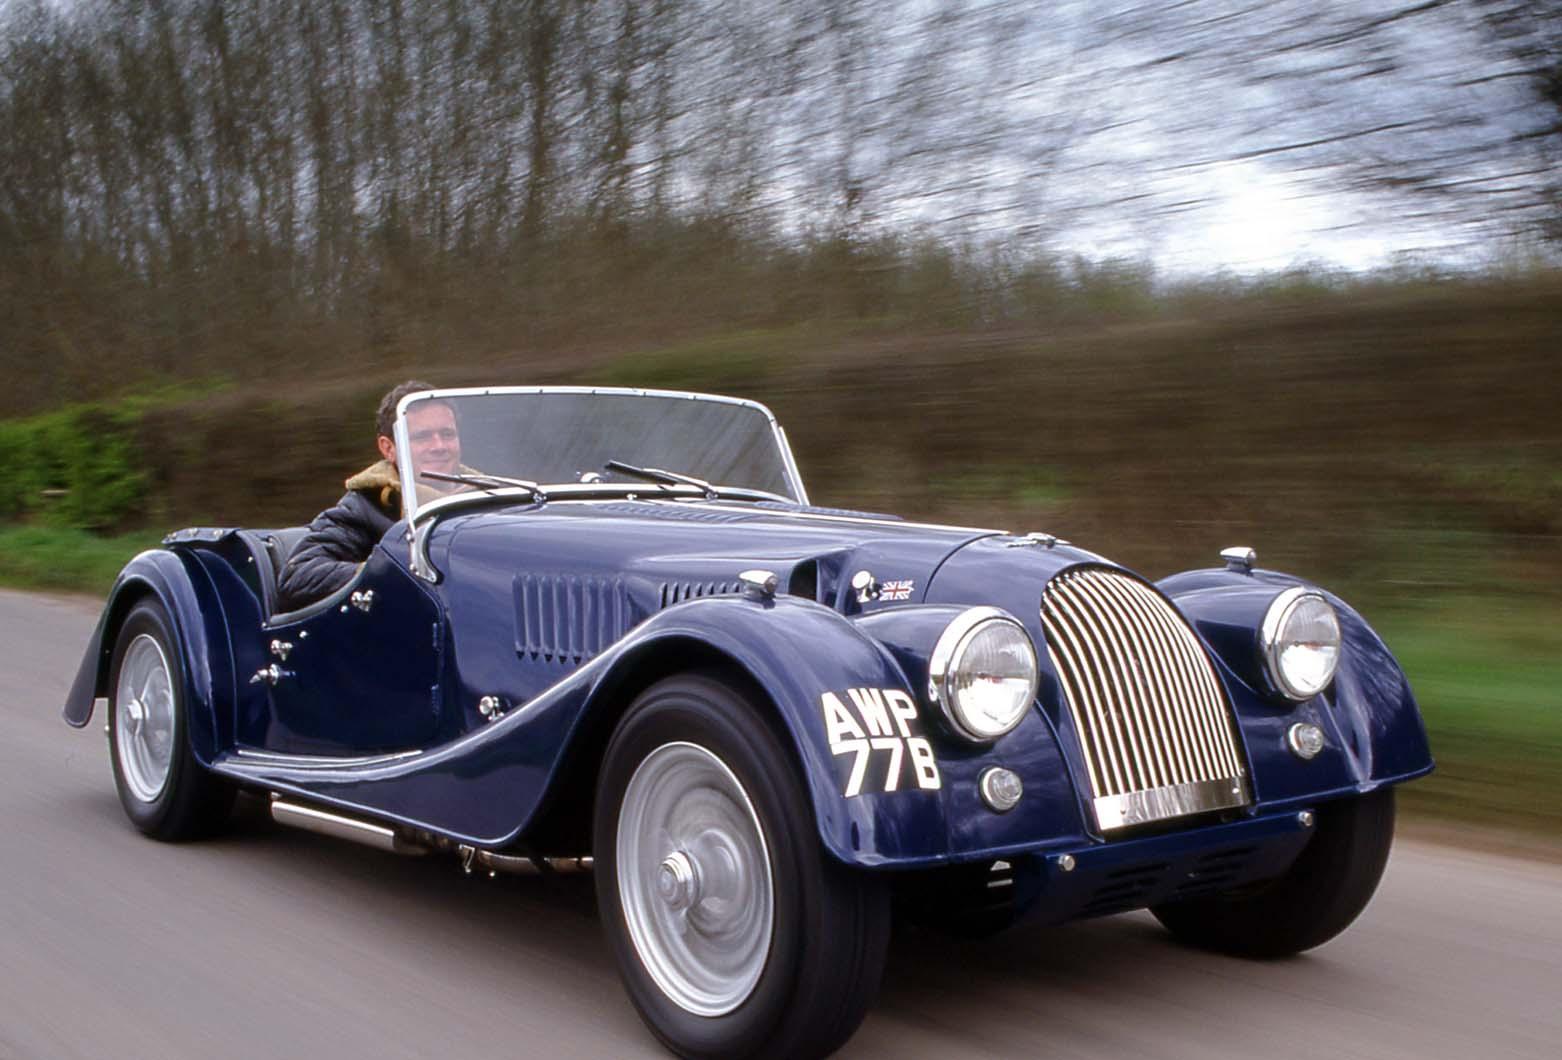 Used car buying guide: Morgan Plus 4 | Autocar